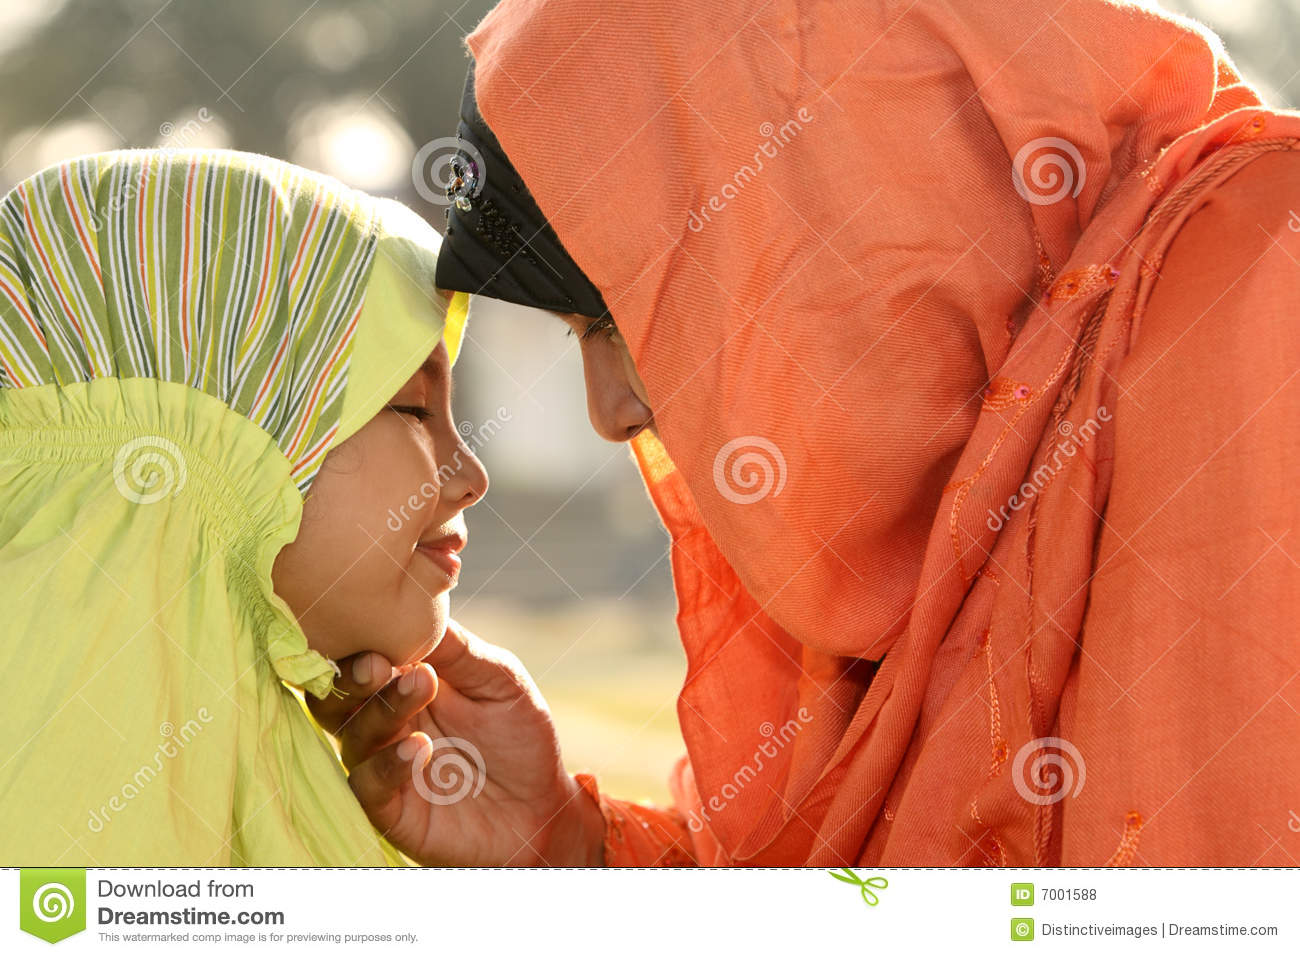 Islam Mother and Child